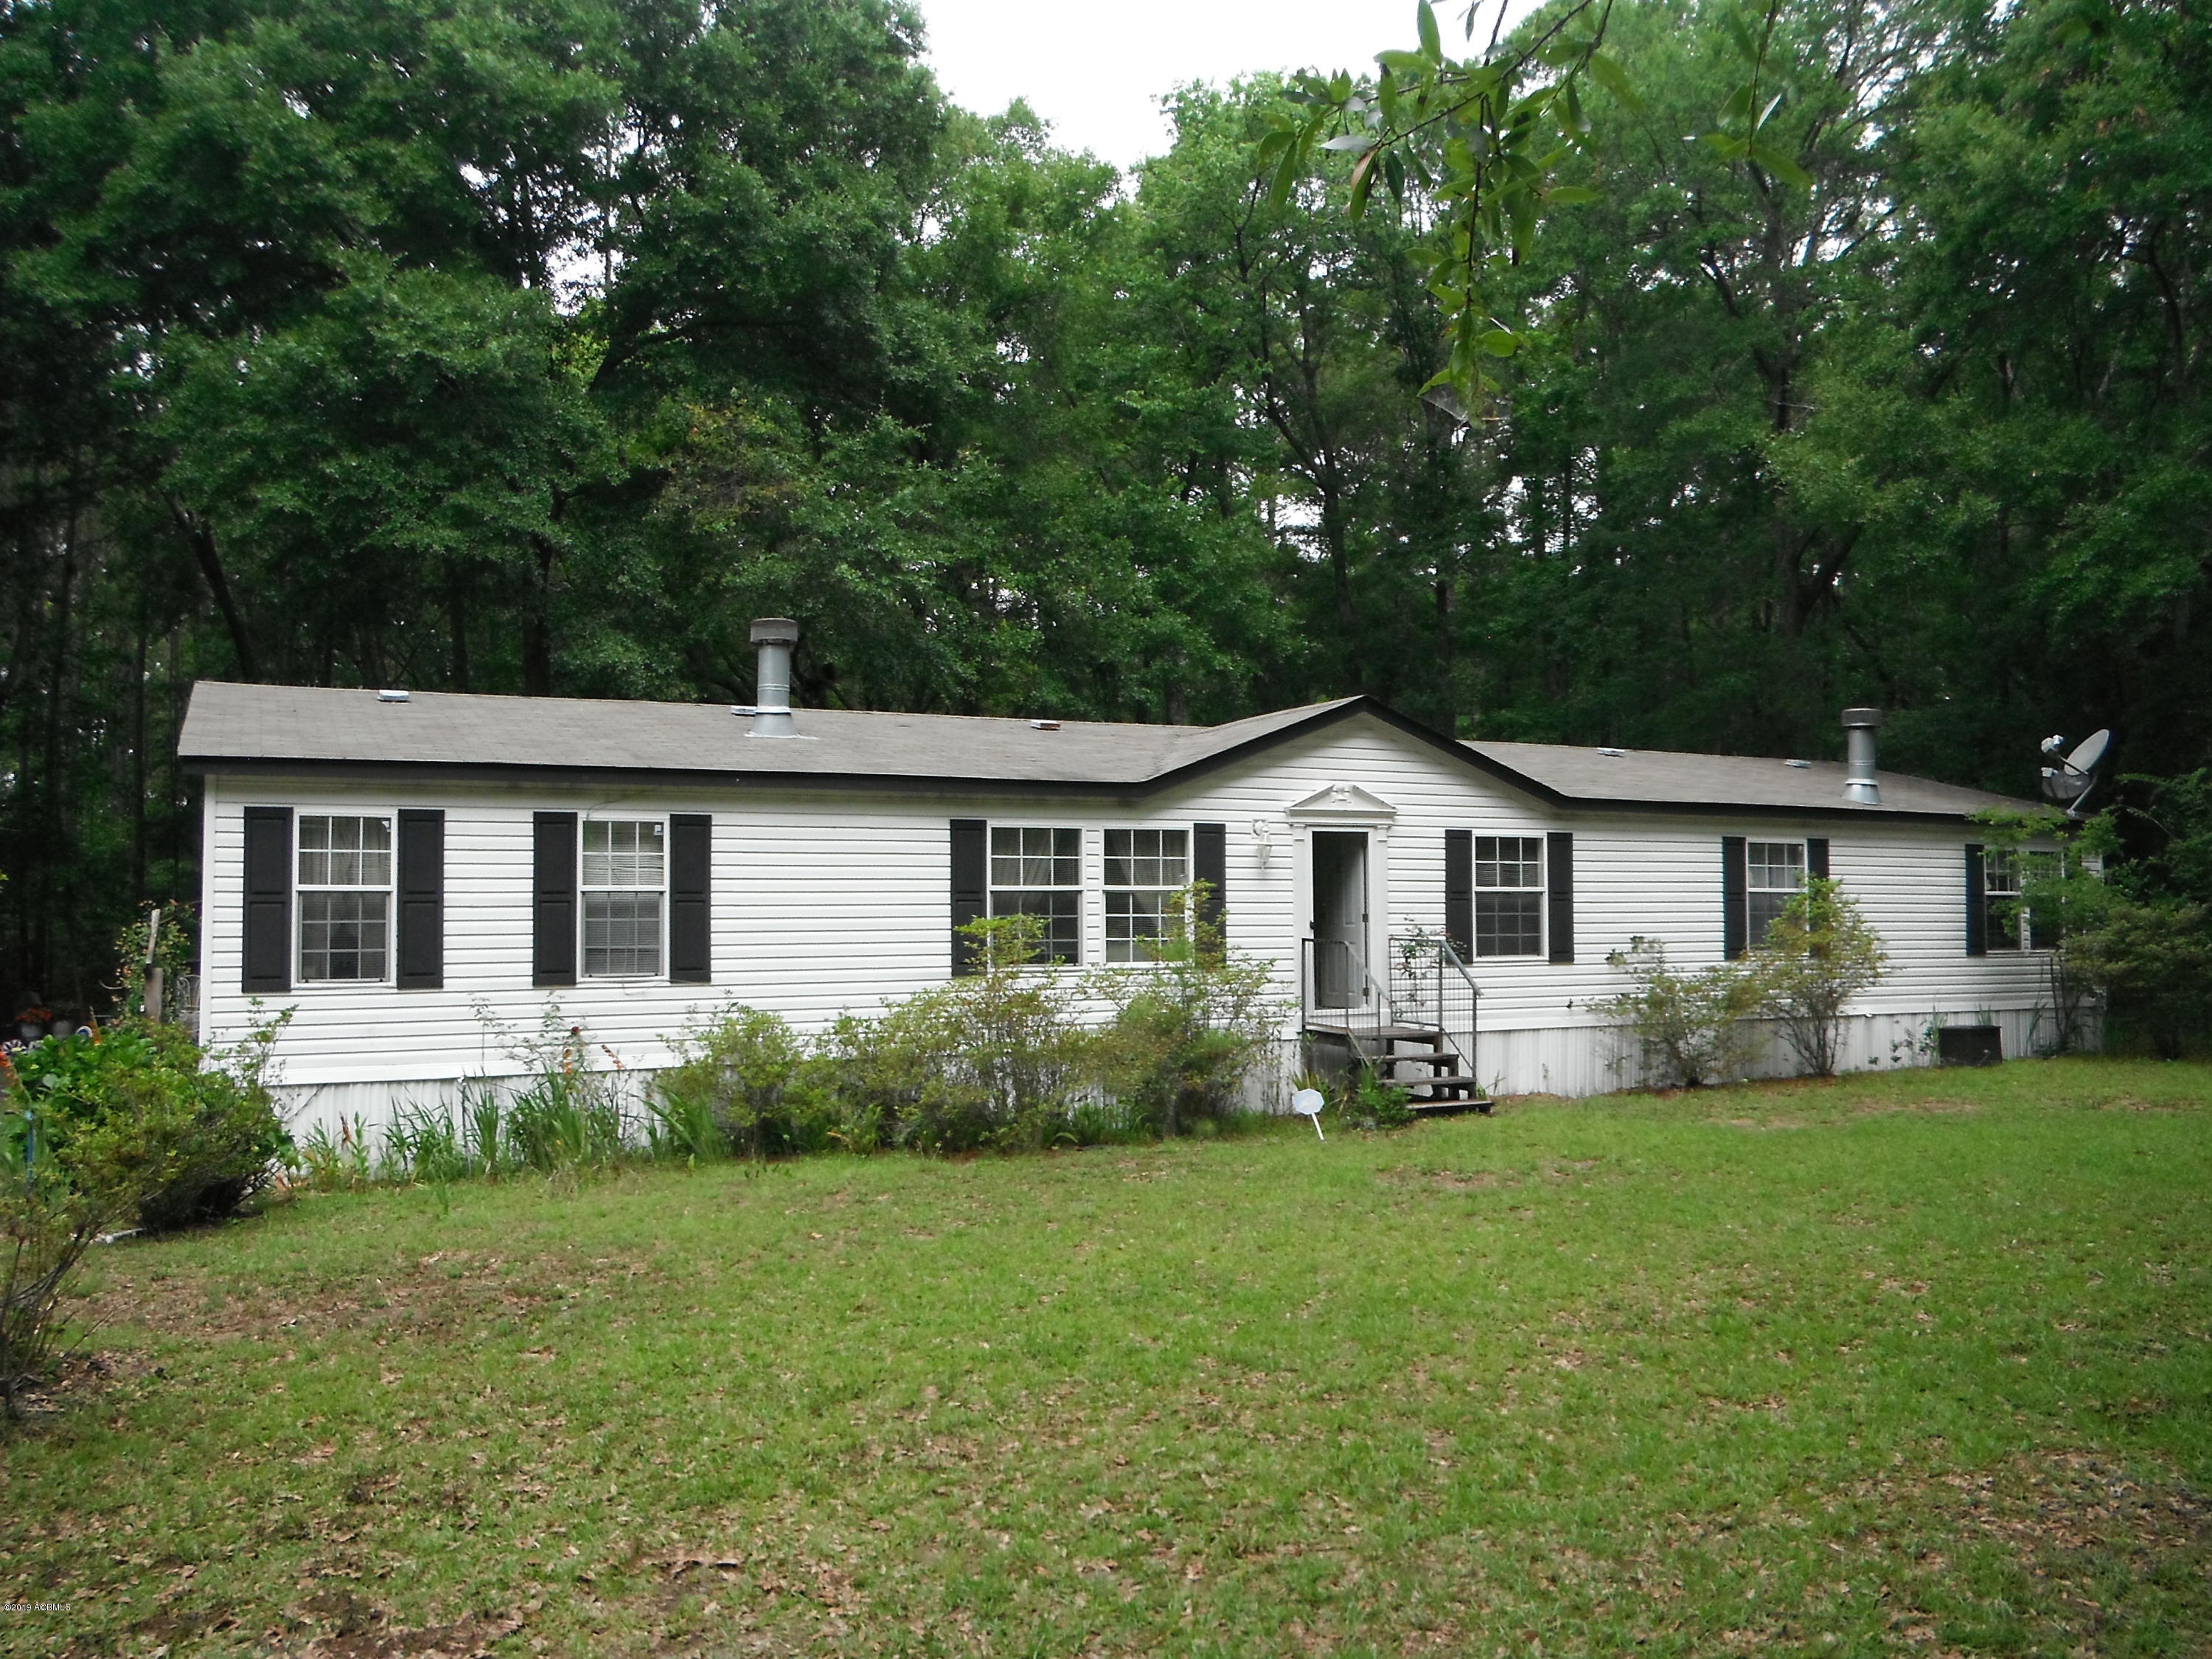 Photo of 251 Little Capers Road, Beaufort, SC 29907